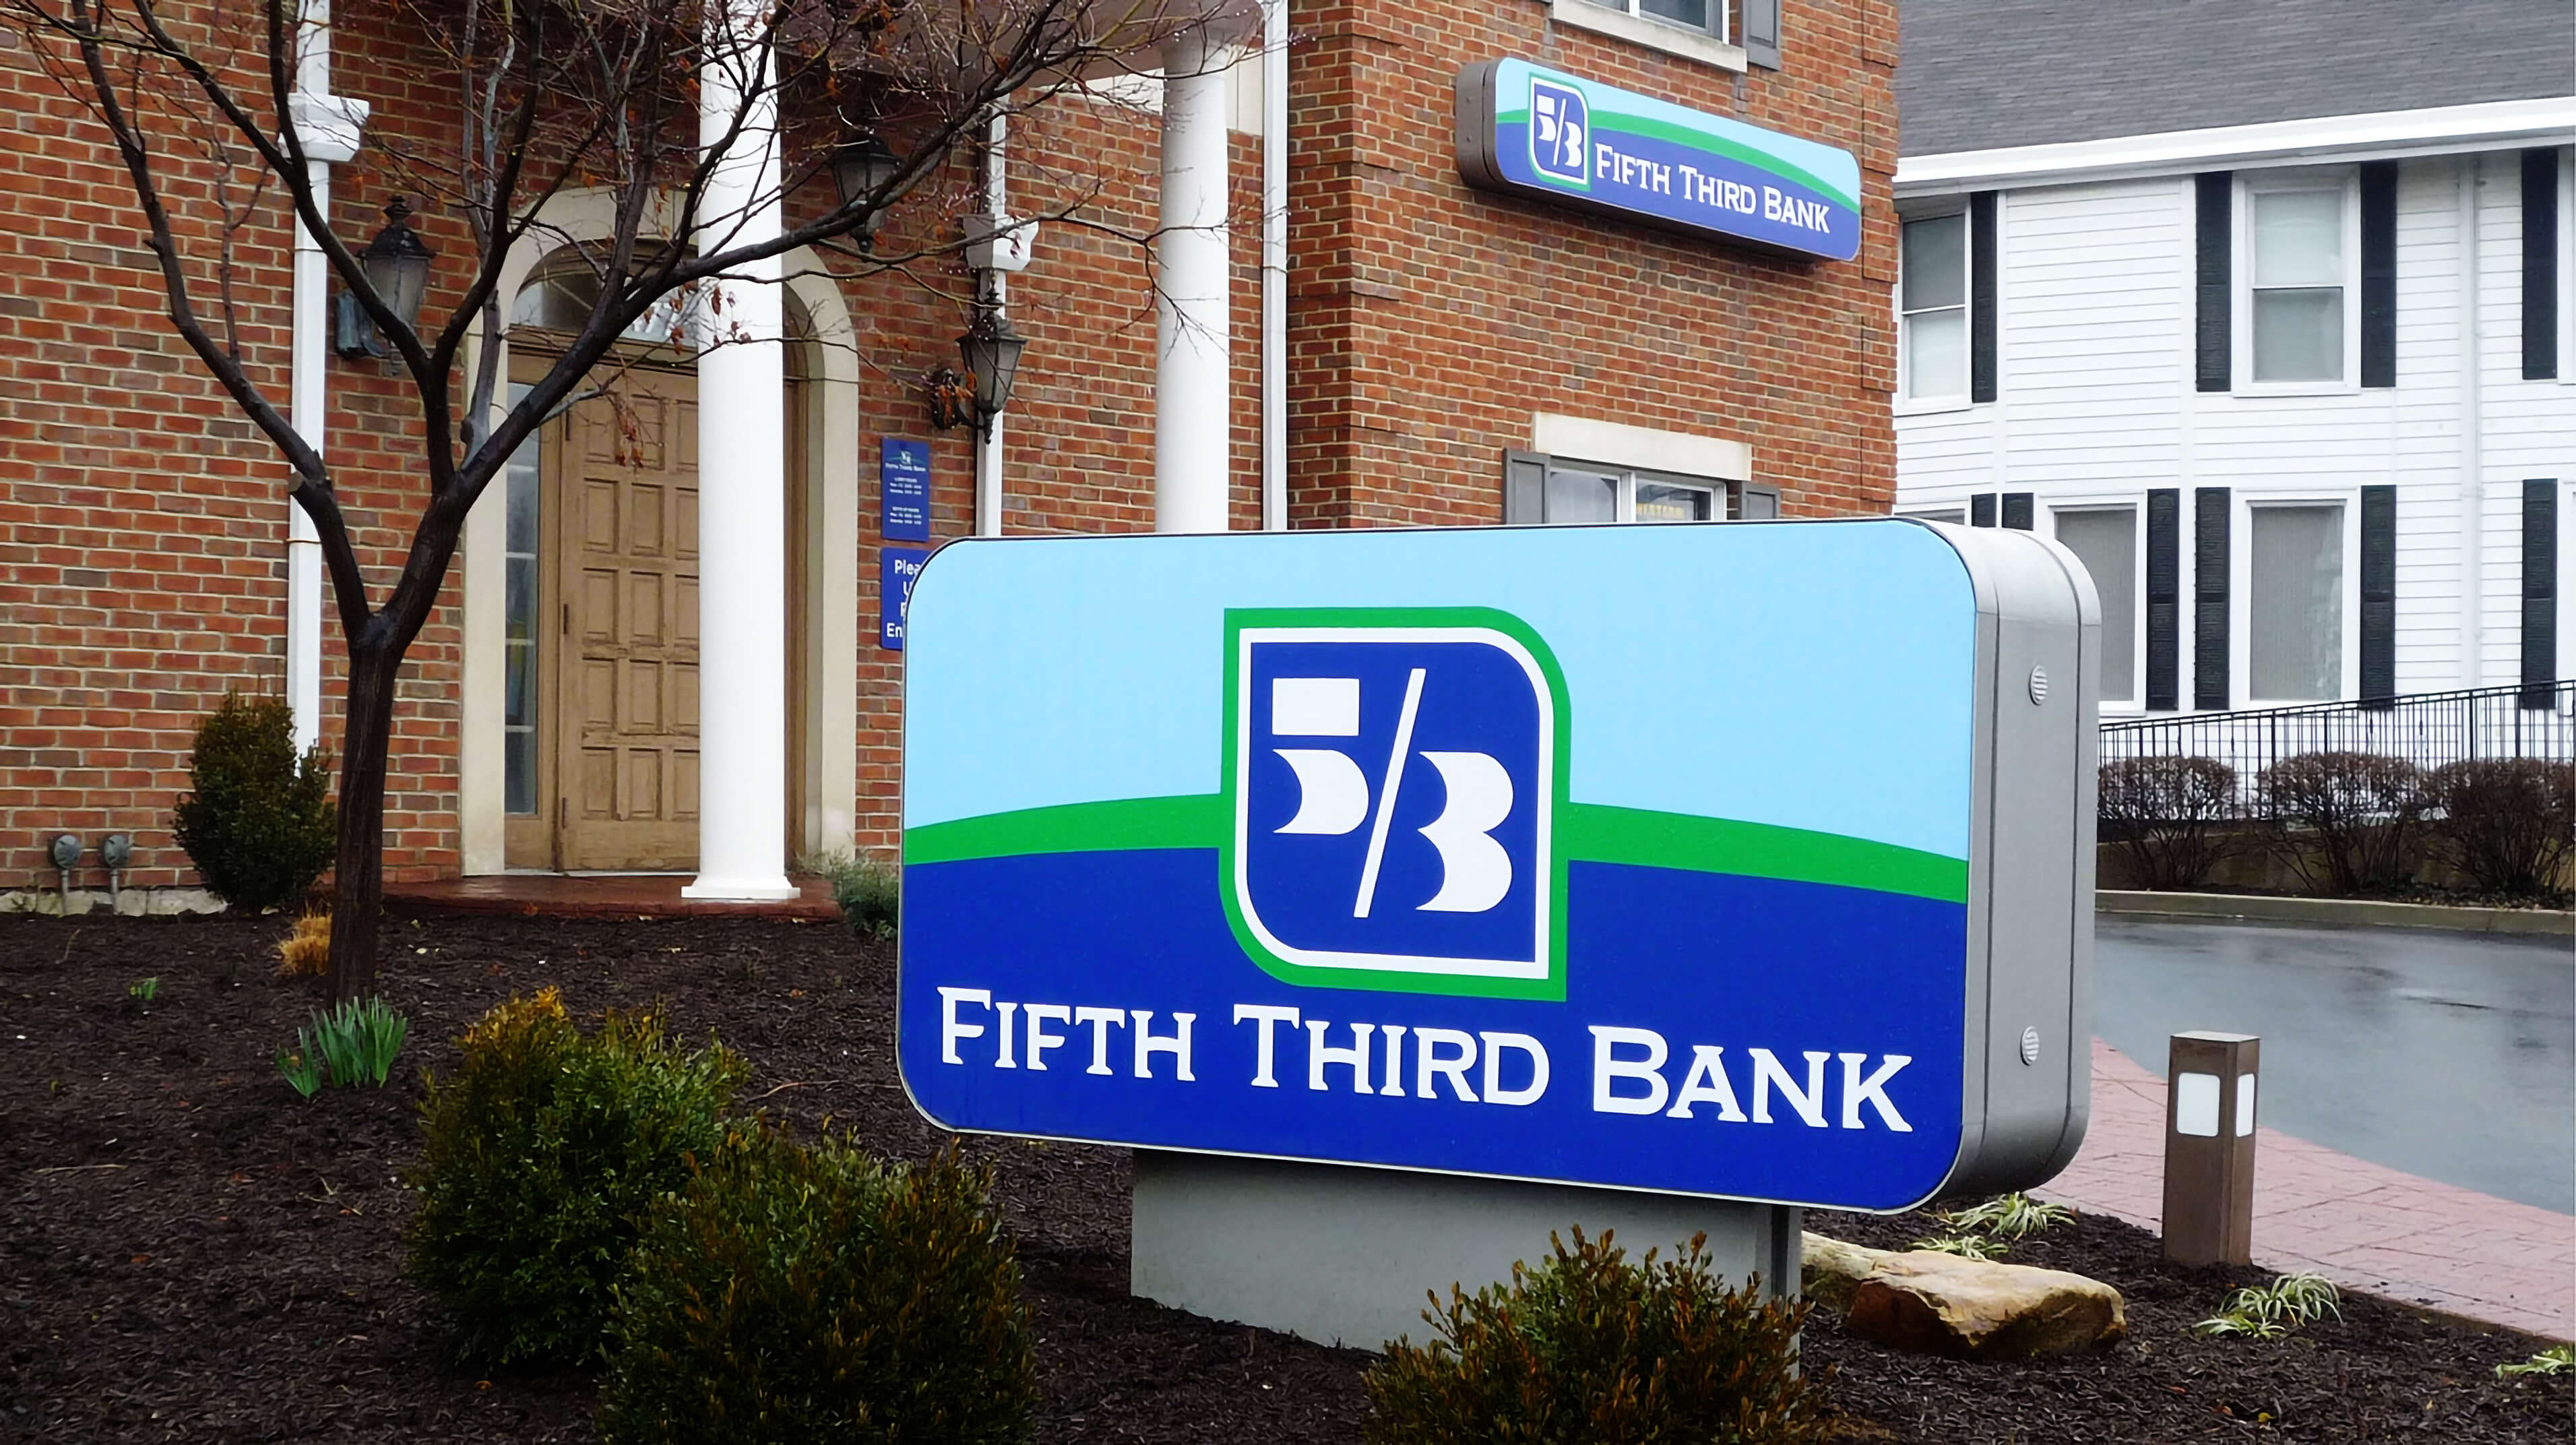 Signage package including a monument sign and wall signage for Fifth Third Bank.